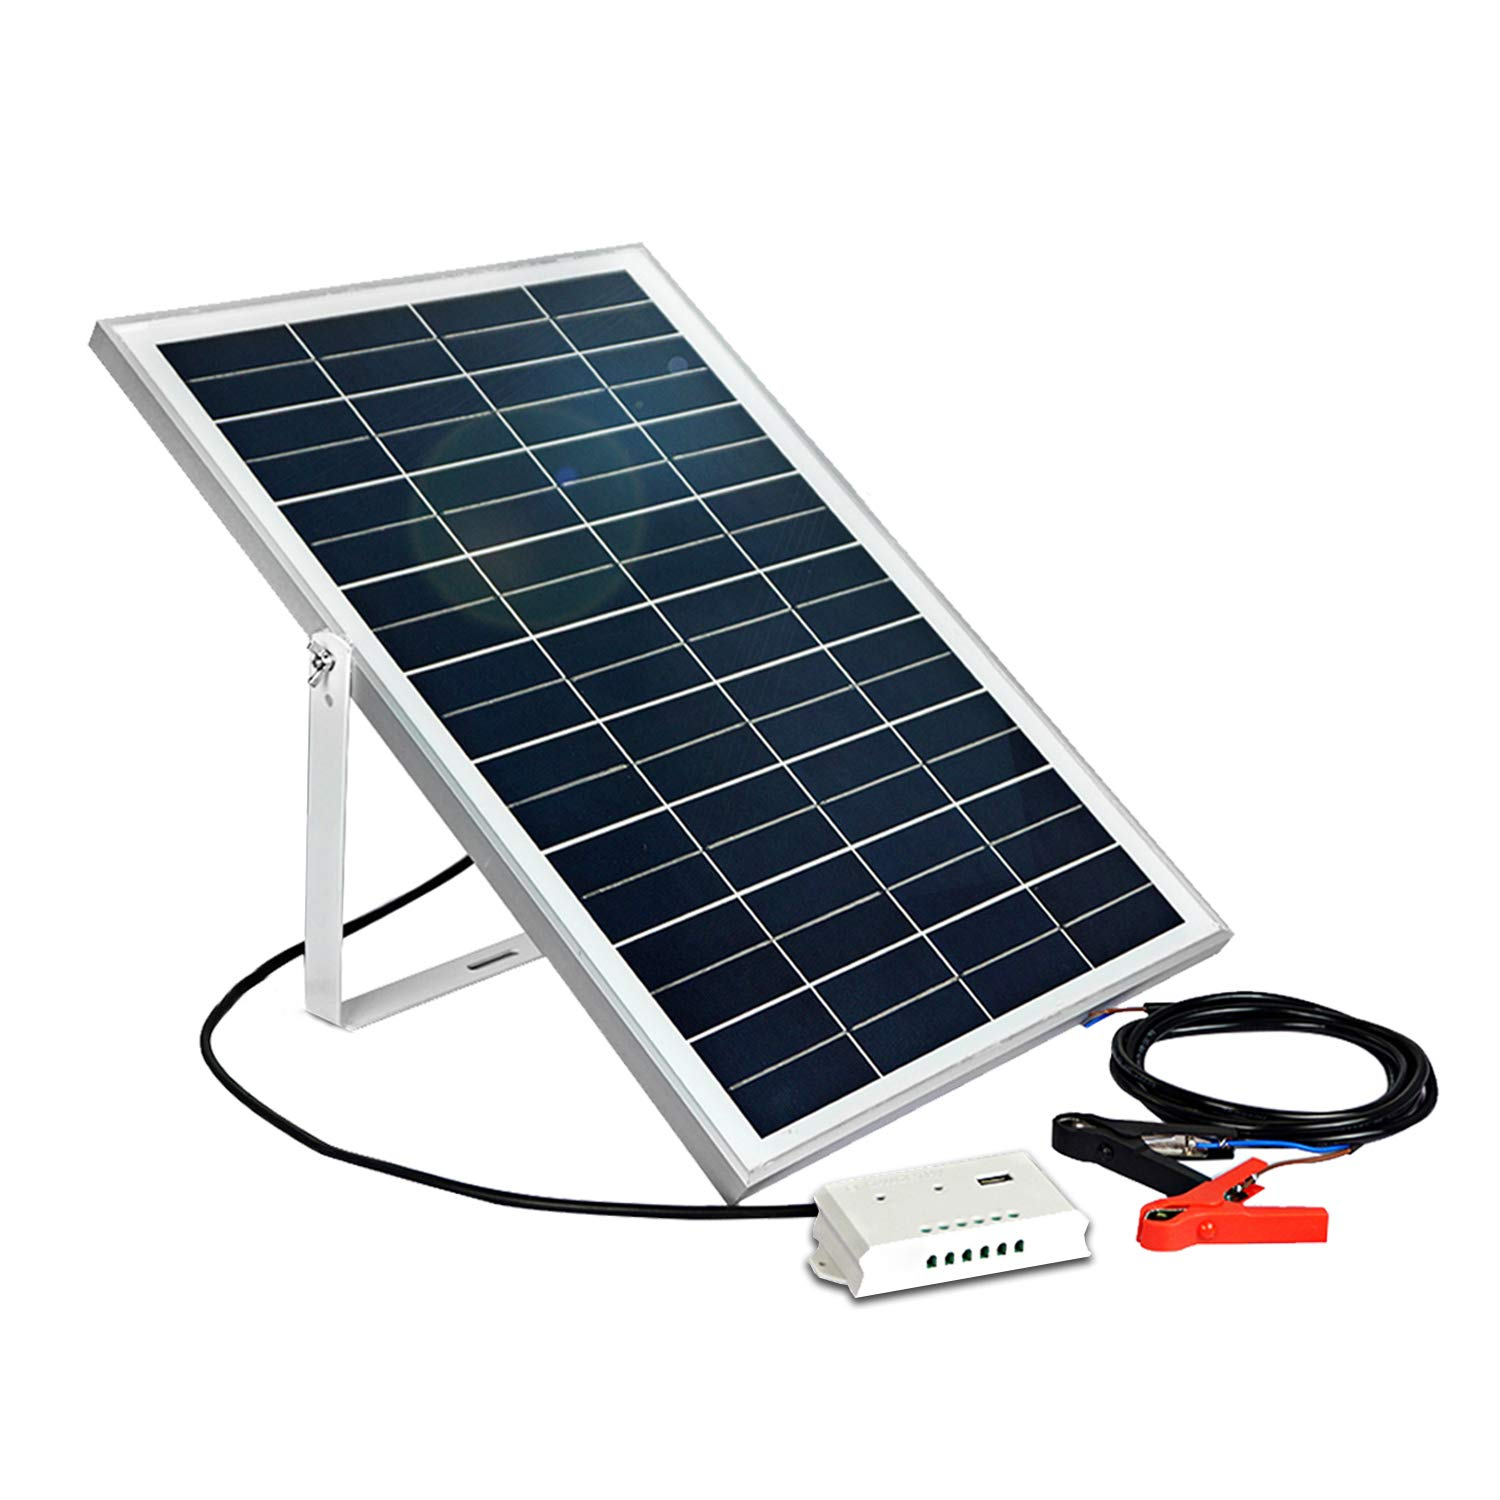 ECO-WORTHY 25W 12V Solar Panel Kit: Portable Solar Panel + Charge Controller with USB Port + U Shaped Mount Bracket + 30A Battery Clip for Car Battery Charging,Camper,RV,Boat,Yacht by ECO-WORTHY